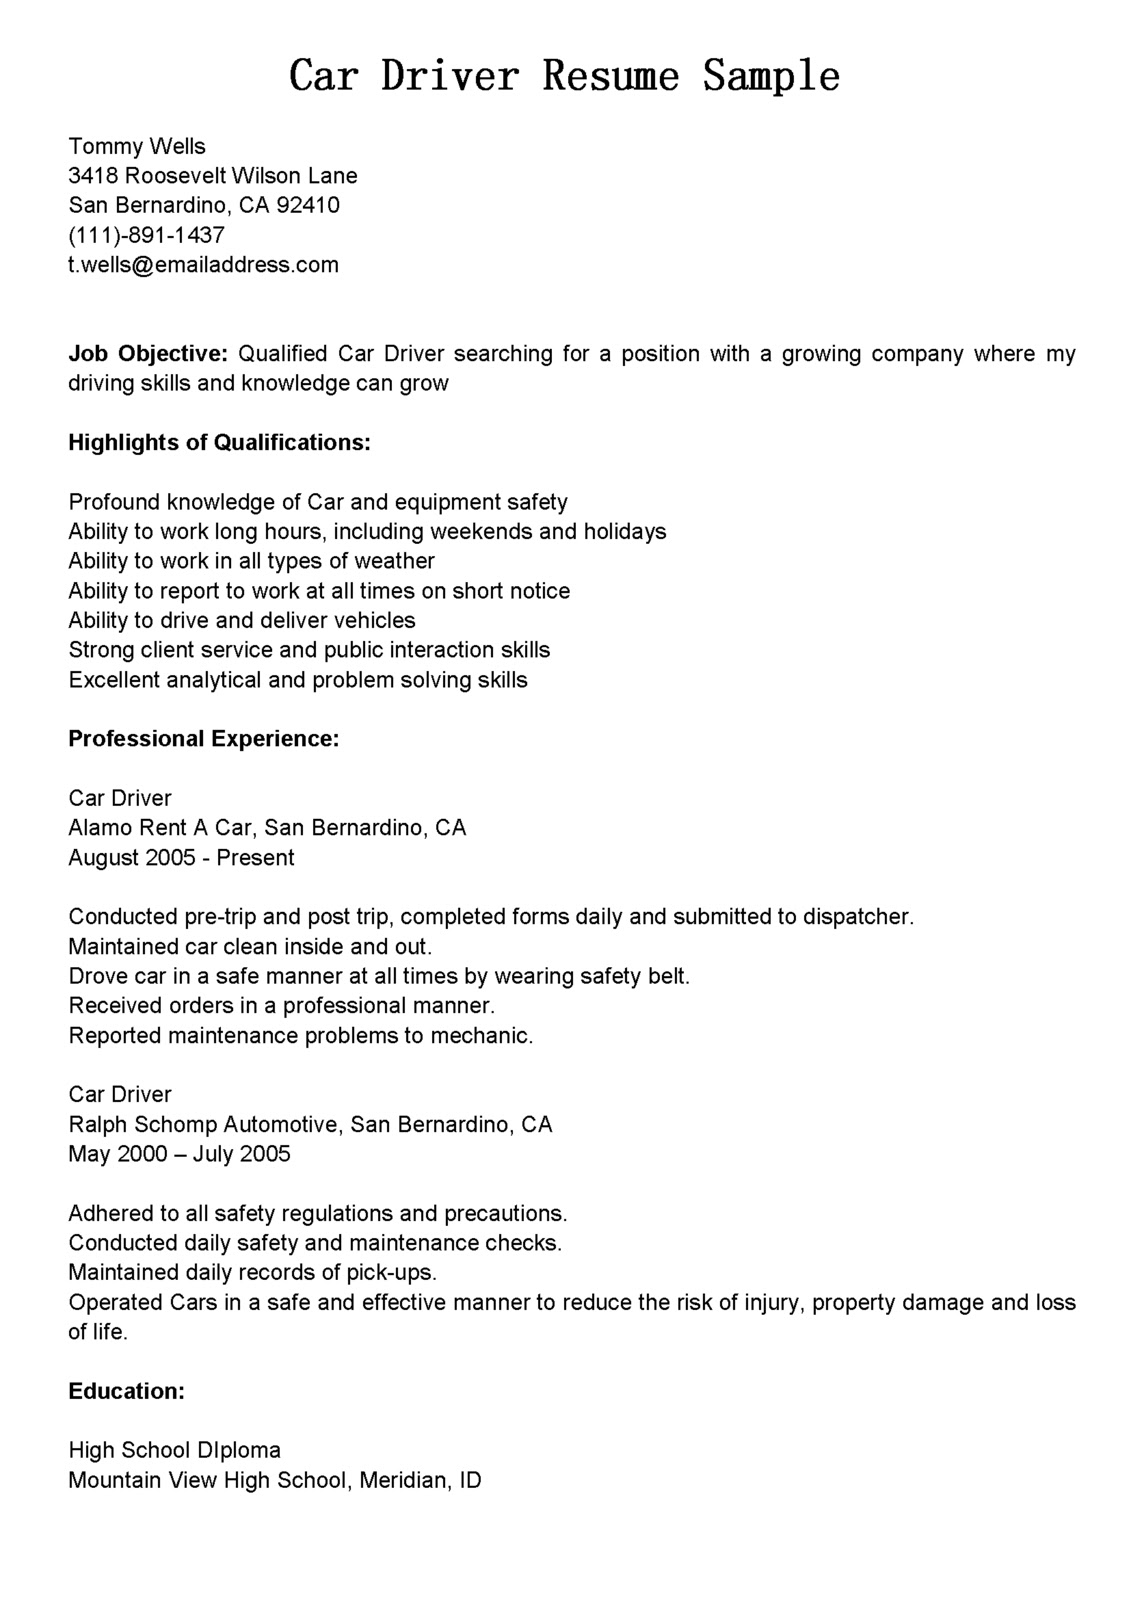 Sample Resume For A Driver Driver Resumes Car Driver Resume Sample